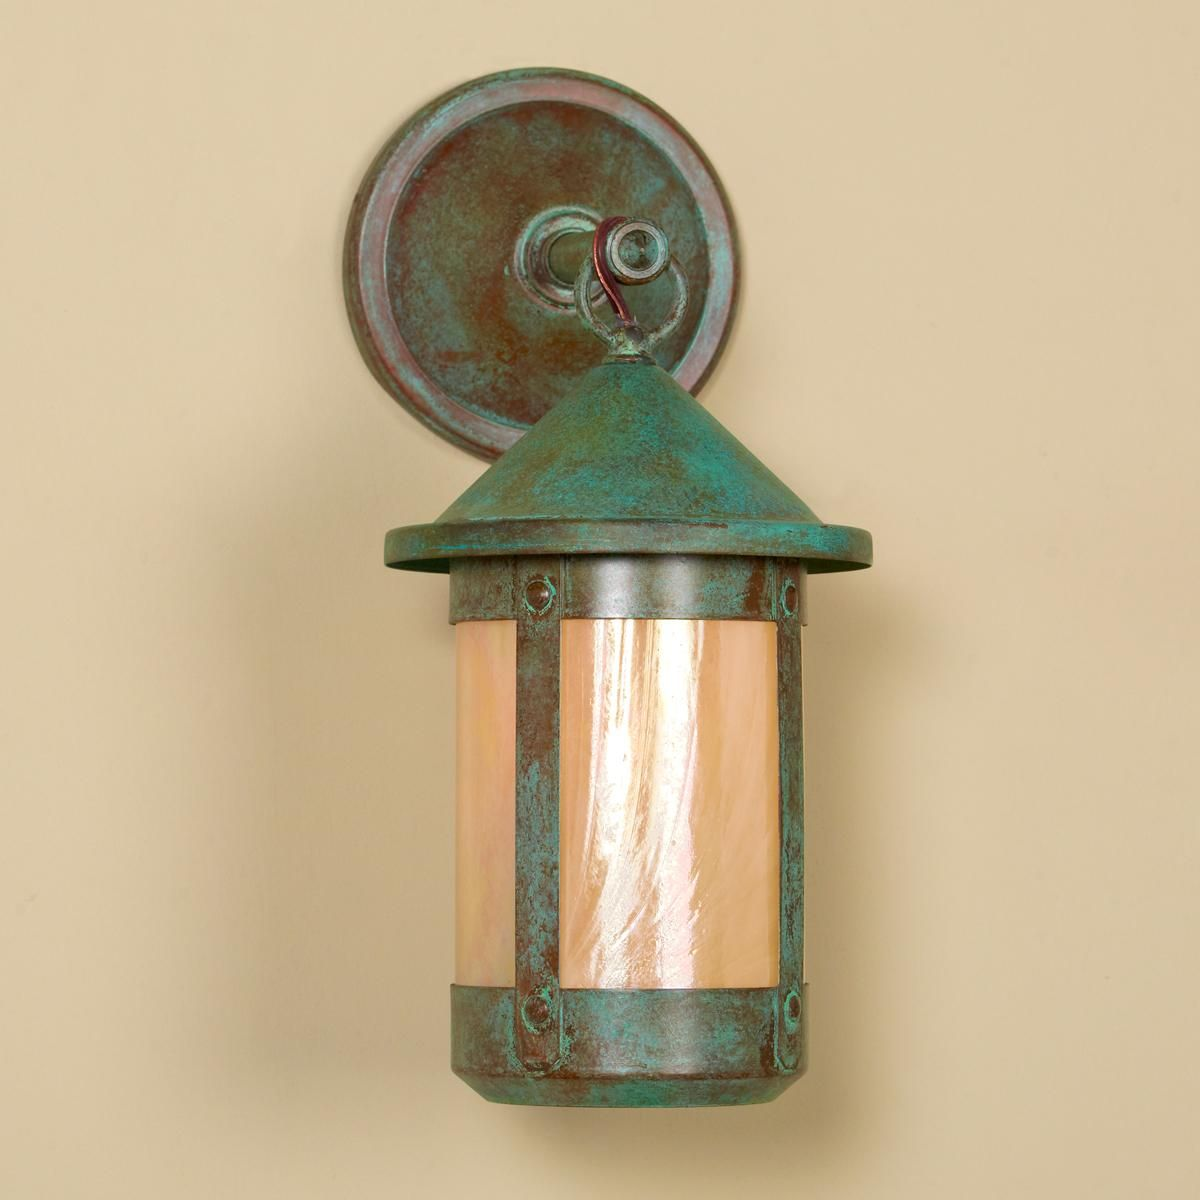 Turret Craftsman Outdoor Wall Light Architecture A